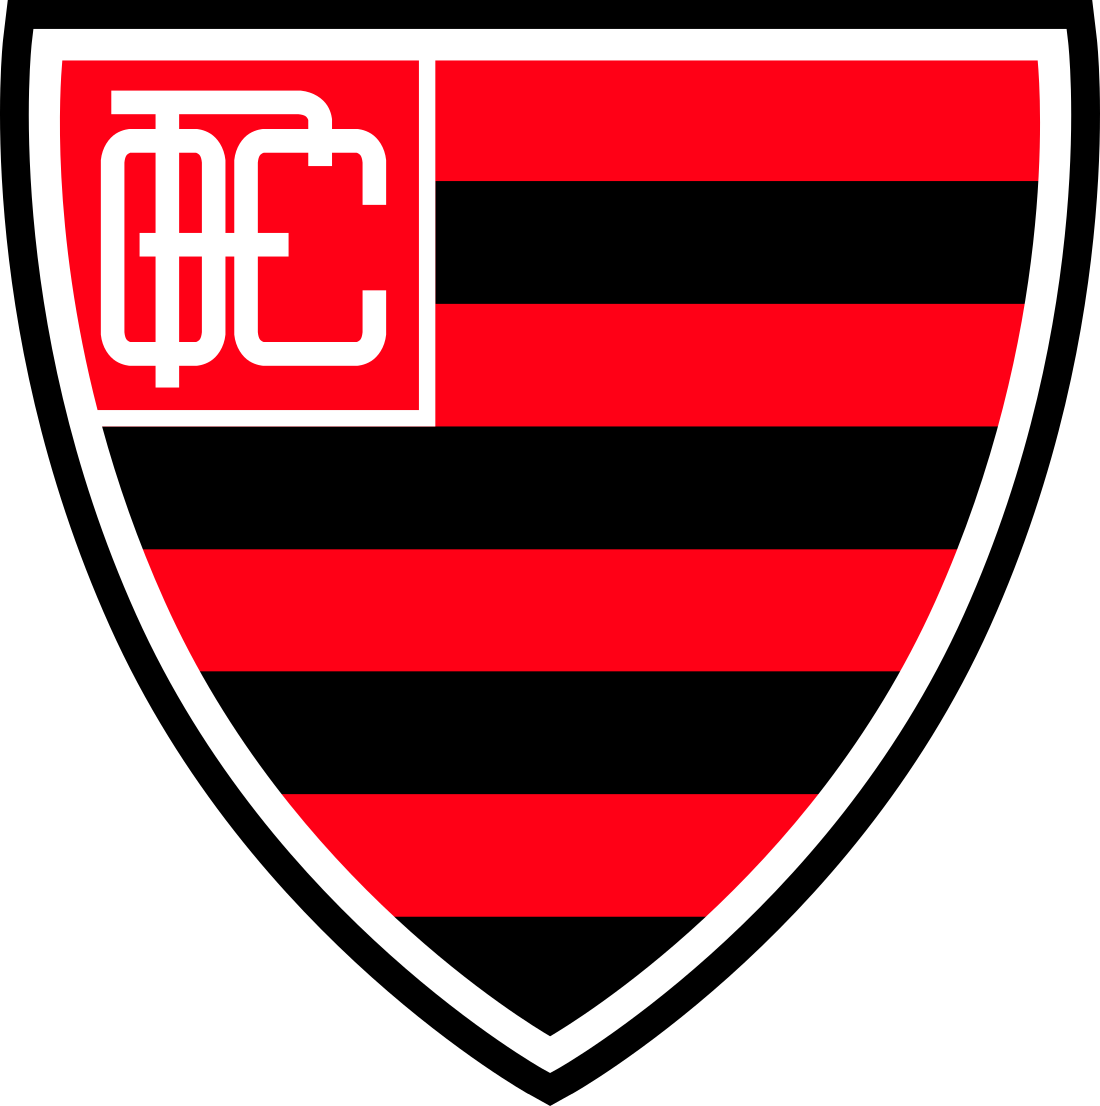 hino oeste fc download mp3 online.